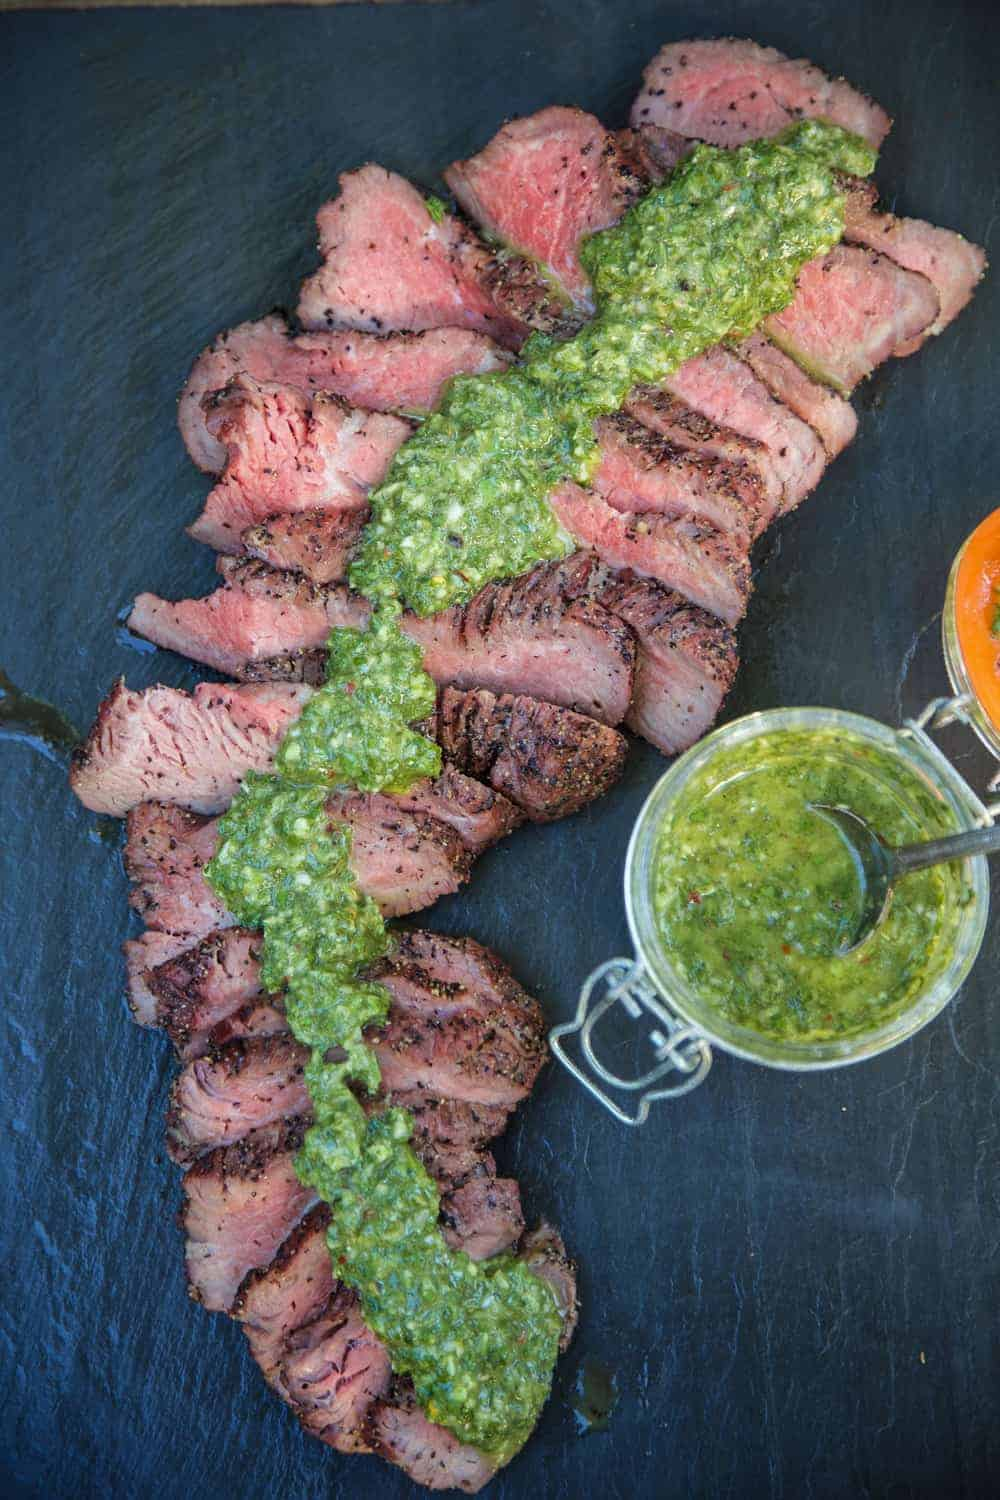 Slices of Red Wine Marinated Smoked Tri Tip with Chimichurri Sauce